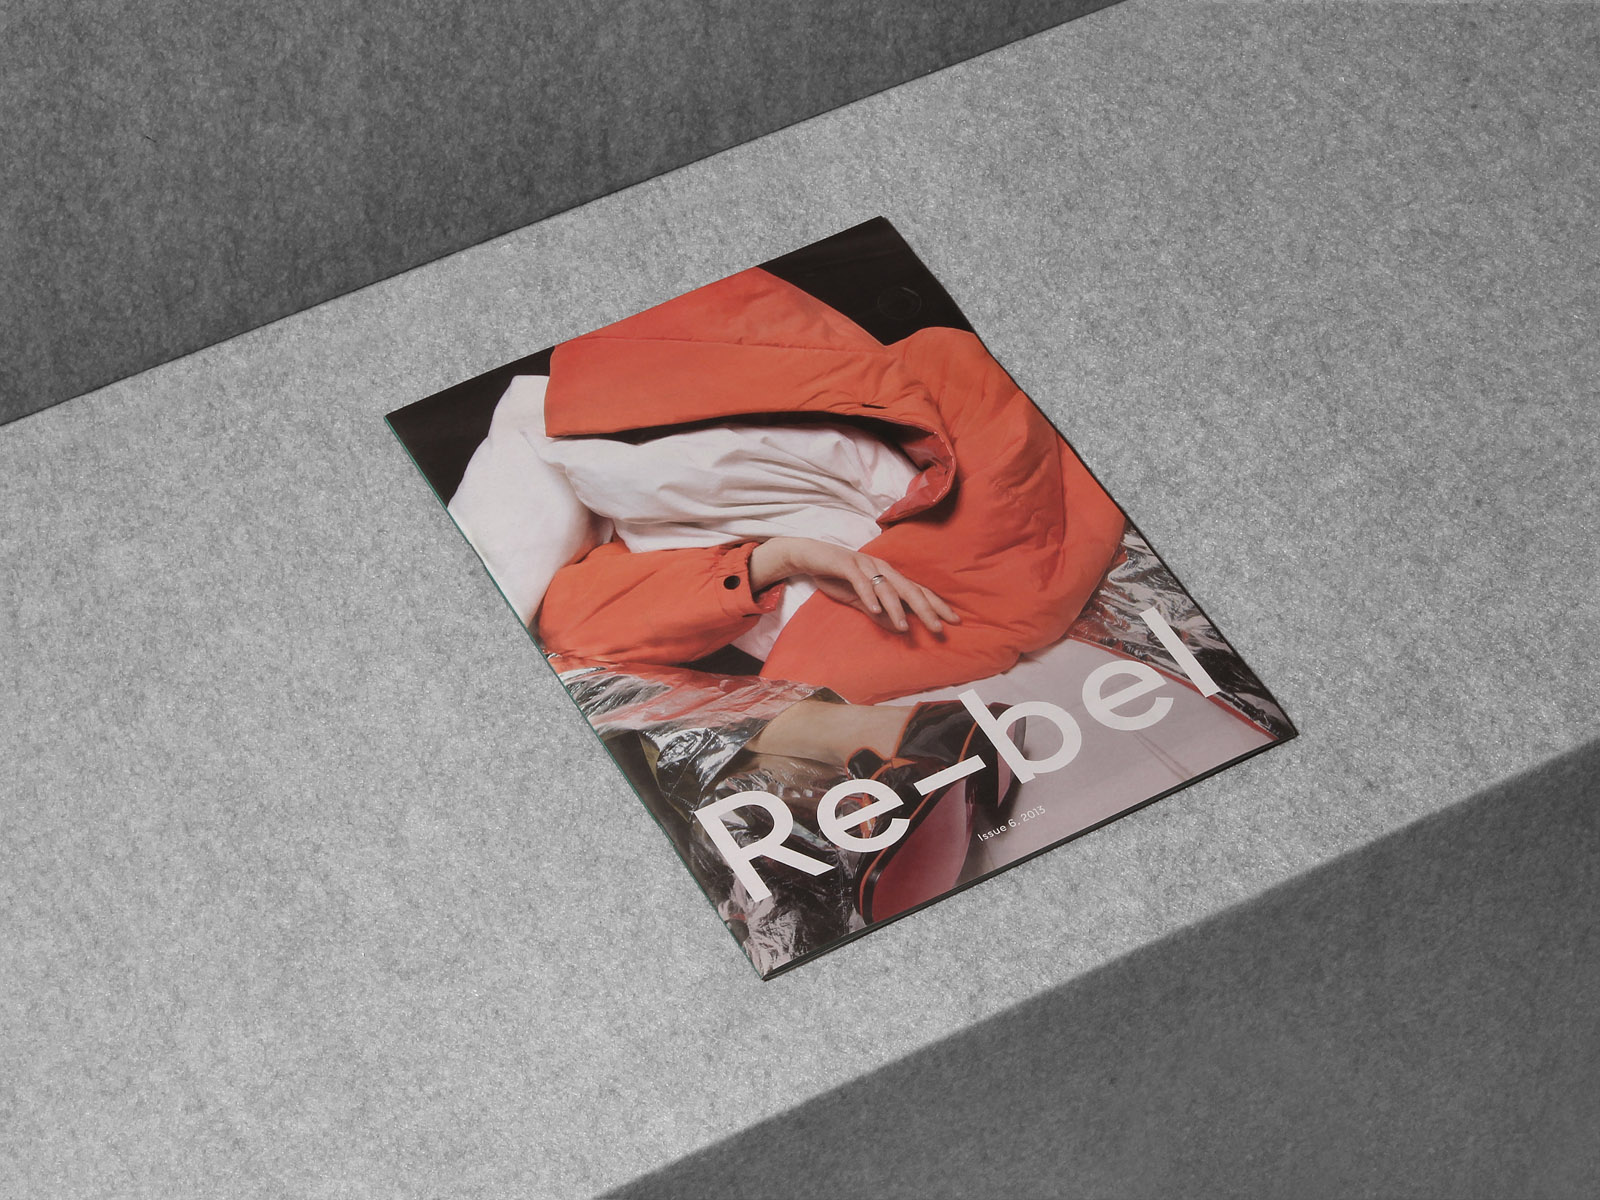 Re bel issue 11